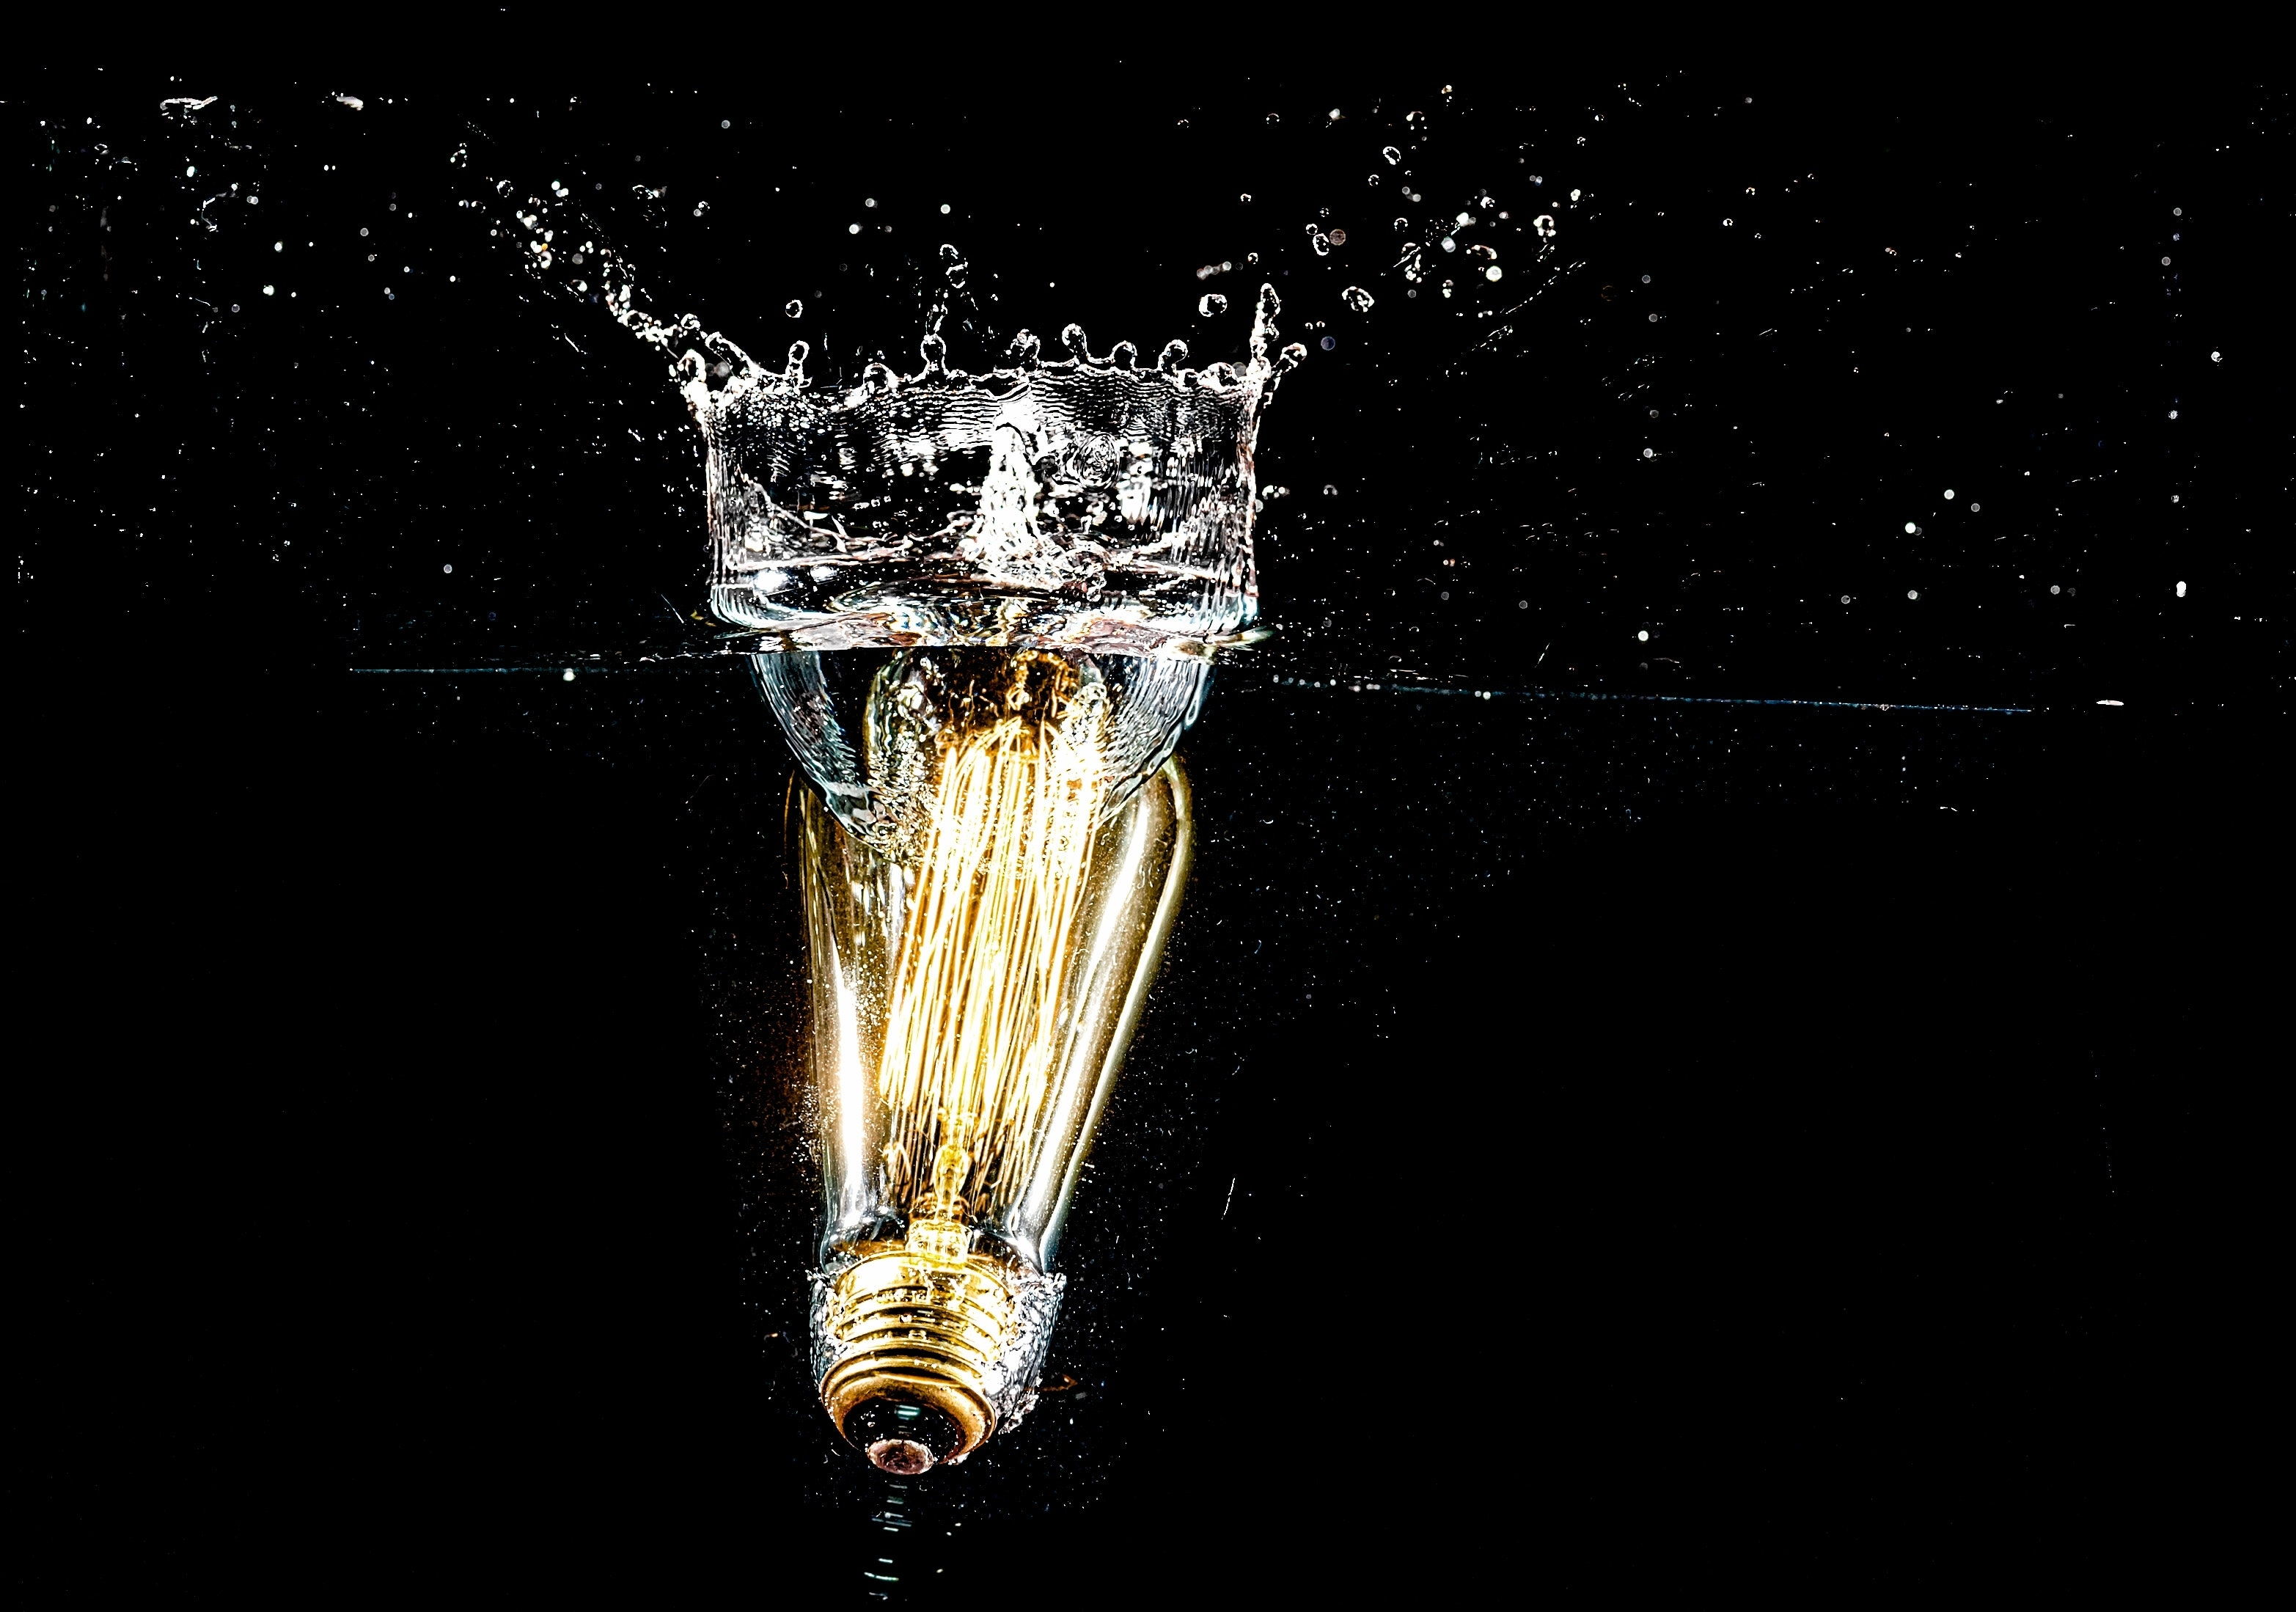 others wallpaper light backgrounds photos hd bulb wallpapers images photography bulbs